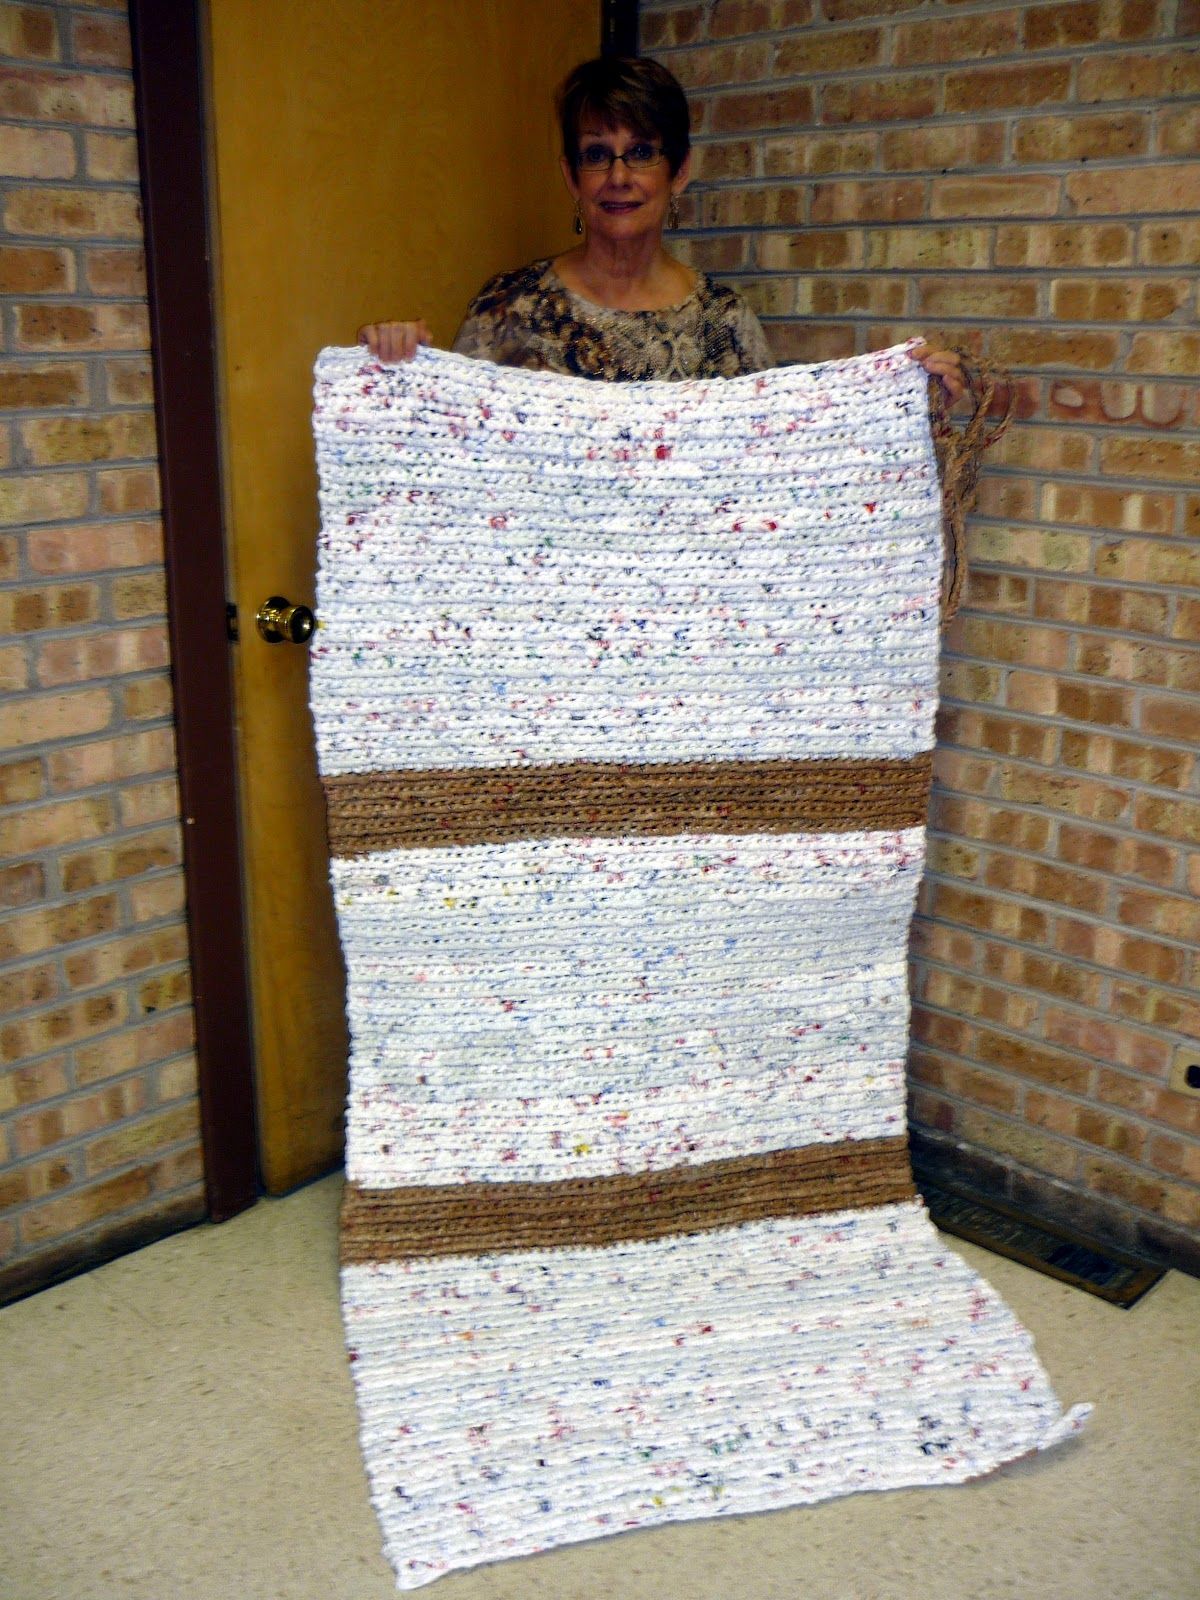 Sleeping Mat For The Homeless Out Of Plarn Just Like New Life For Old Bags!